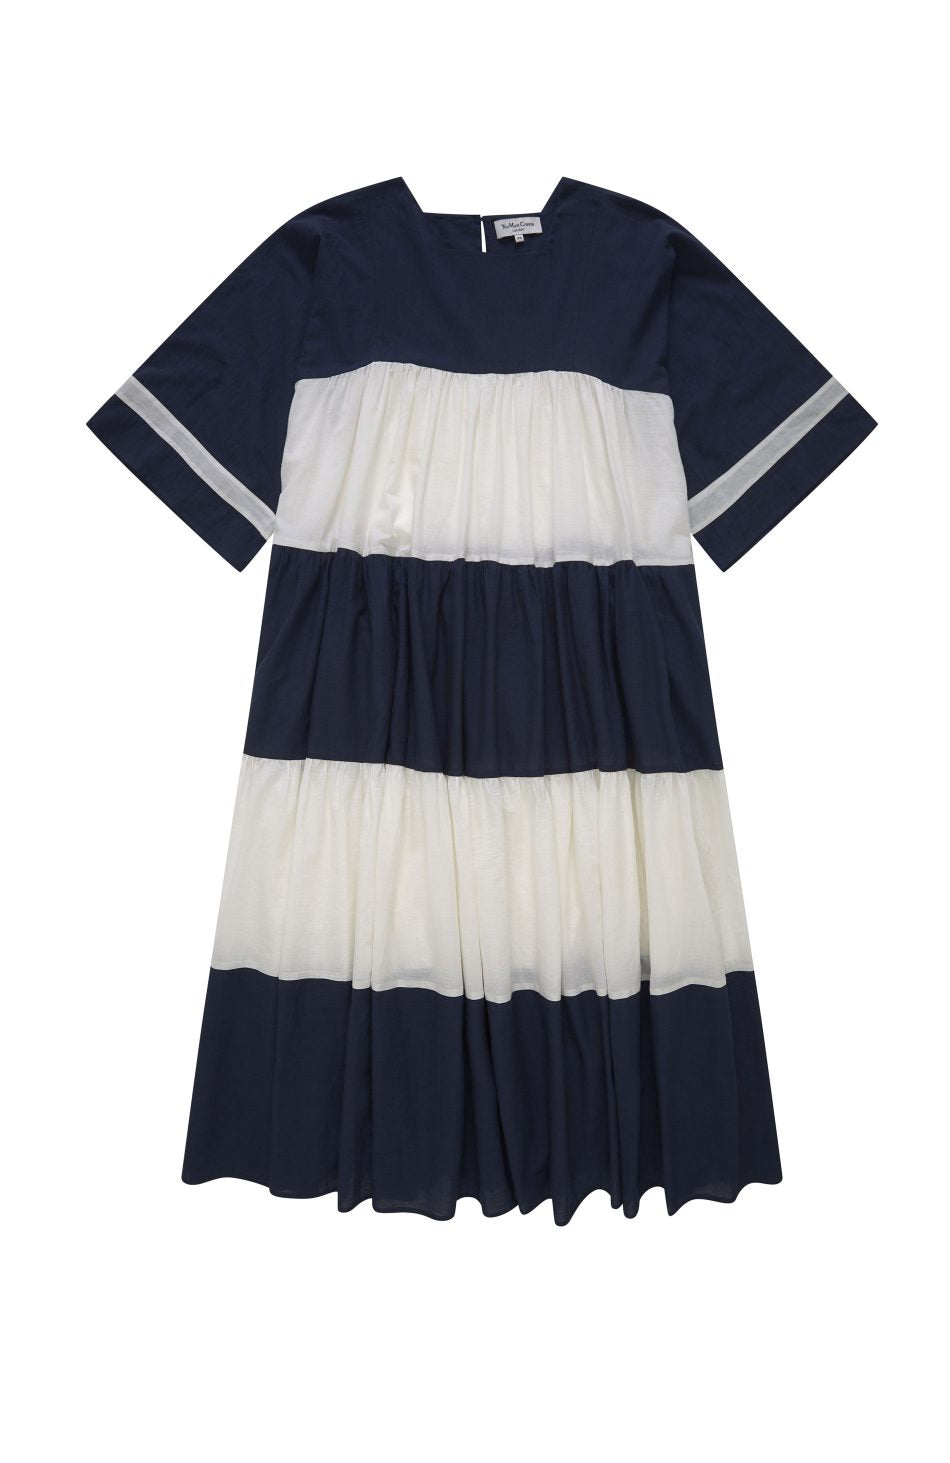 Paloma Dress in Navy and Cream